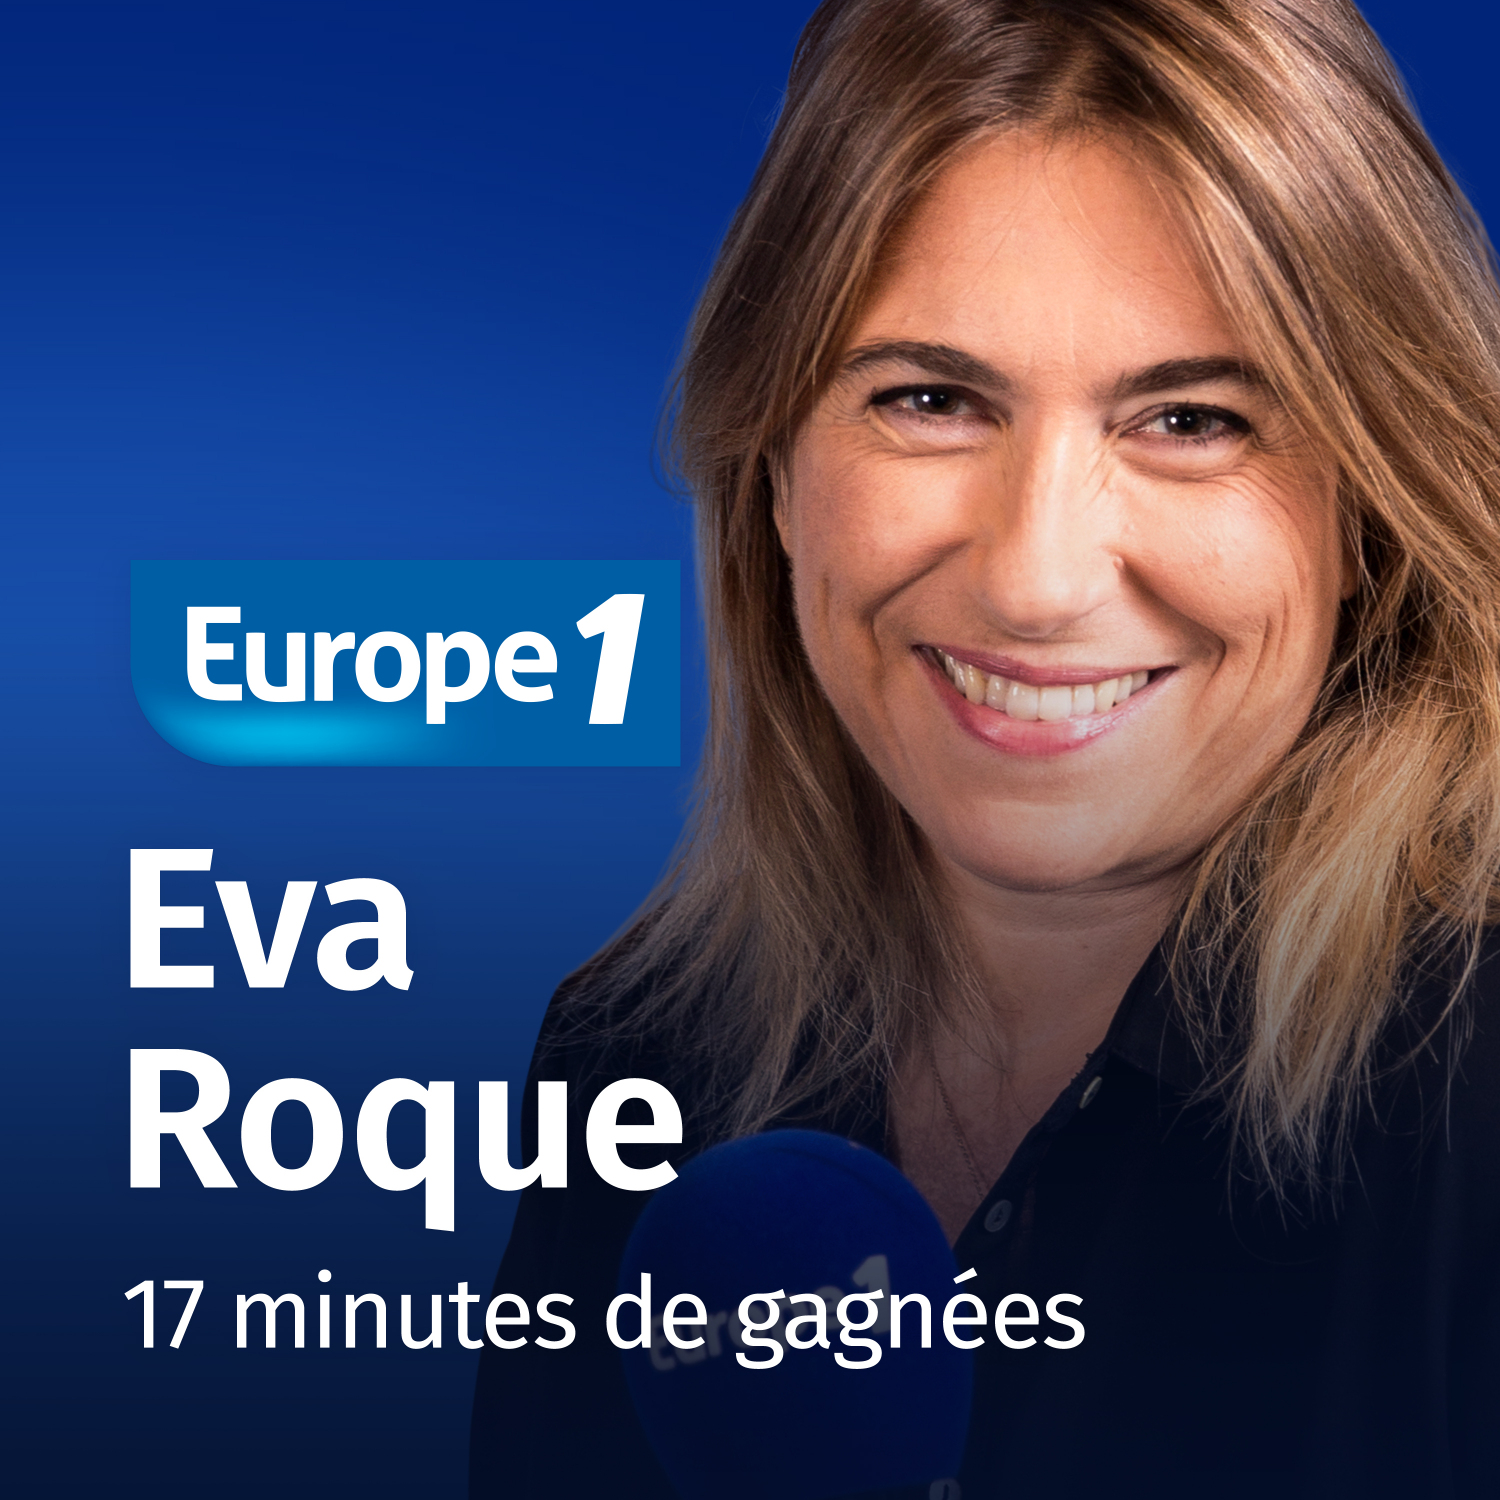 Image 1: Podcast 17 minutes de gagnees Eva Roque sur Europe 1